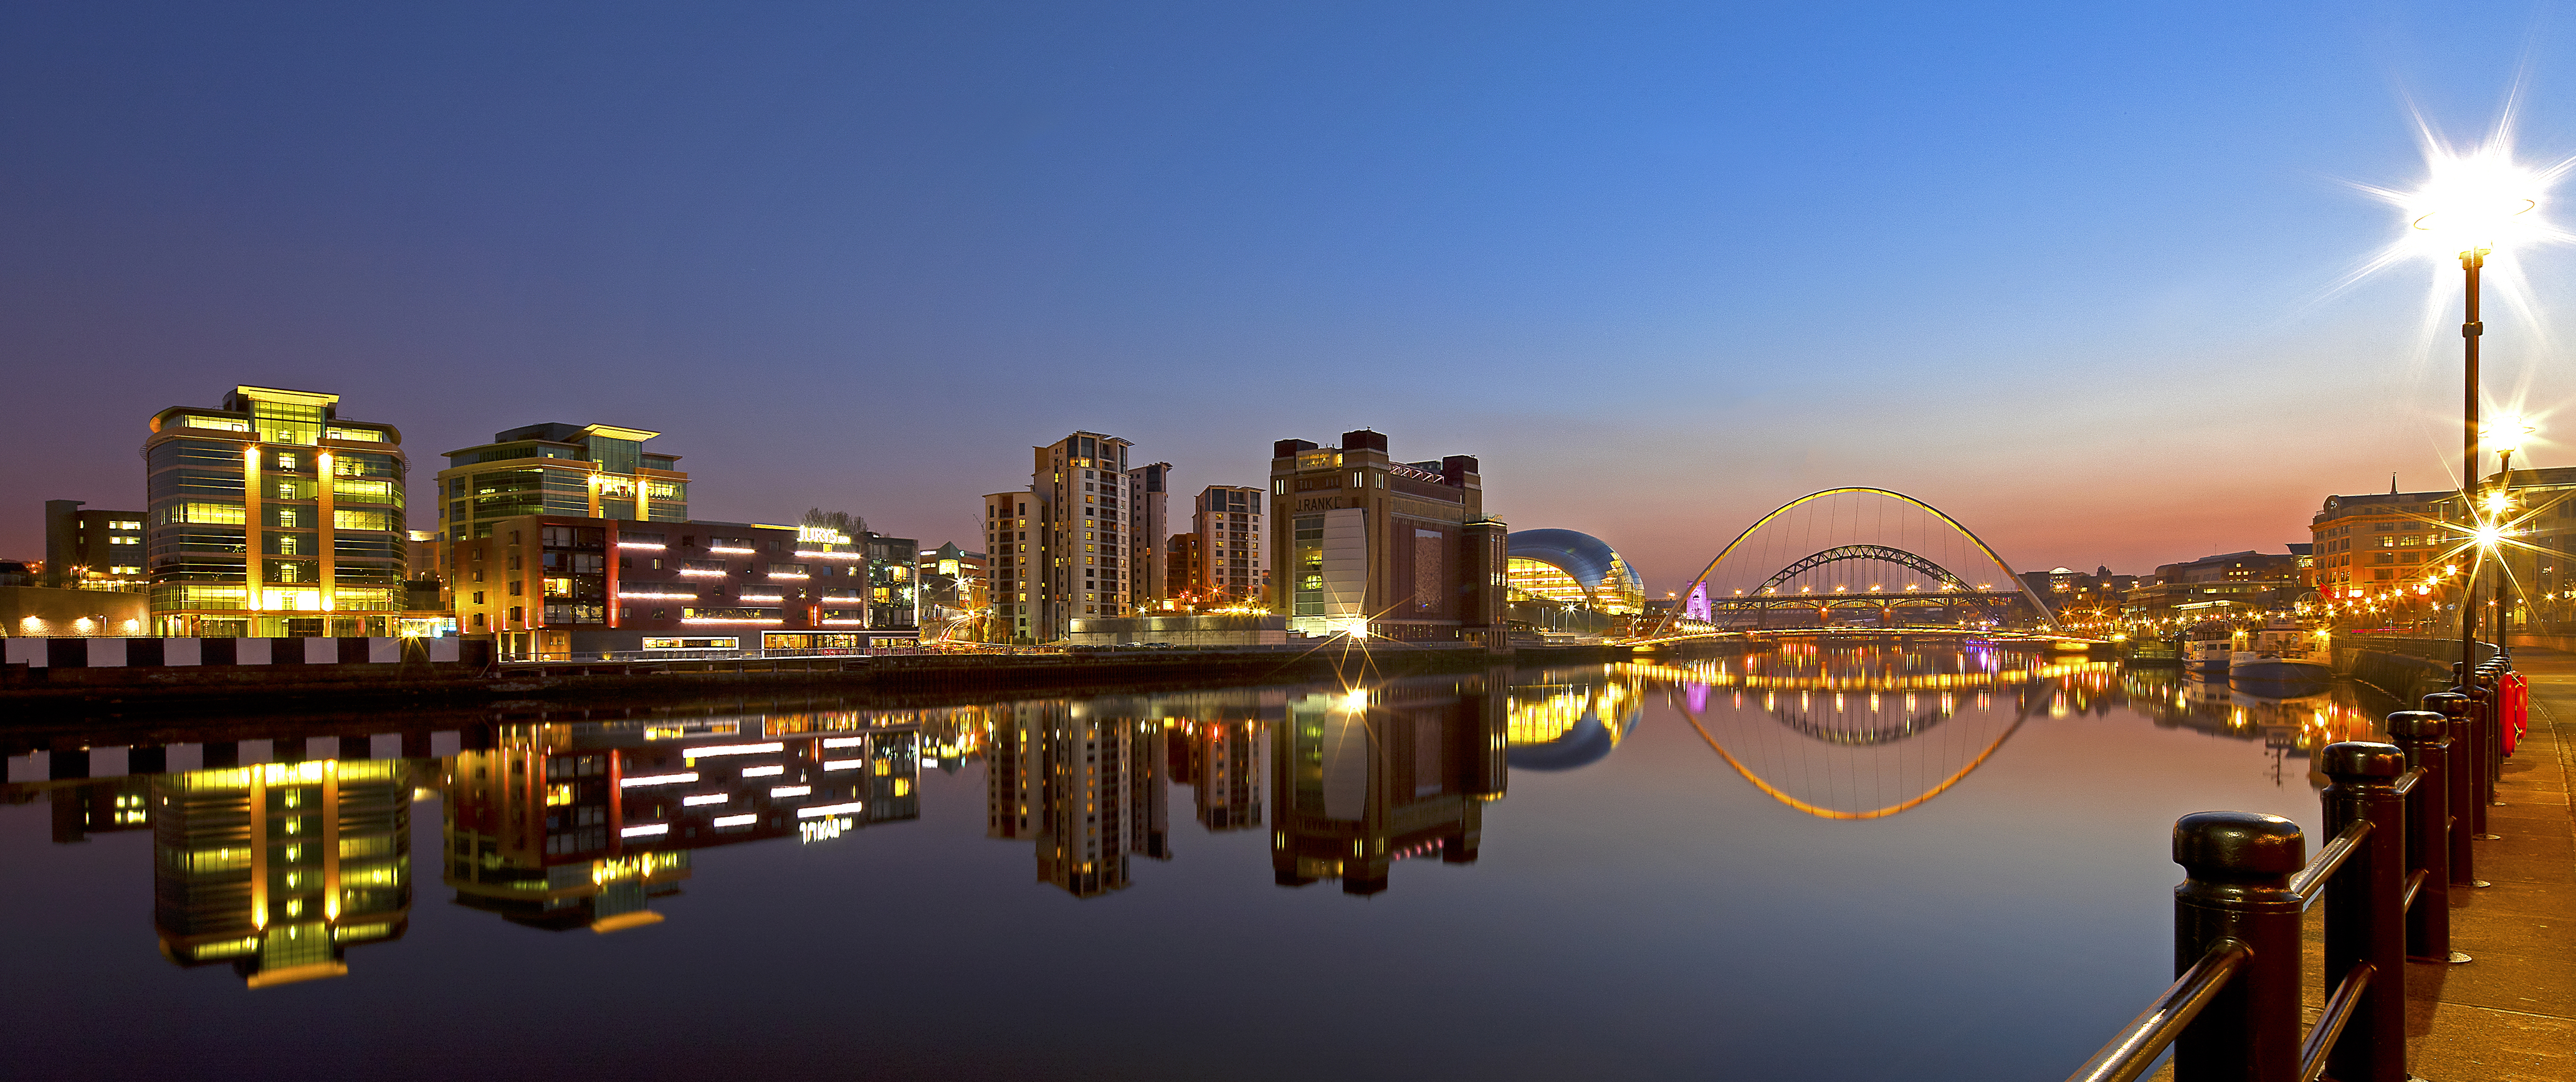 Quayside at night